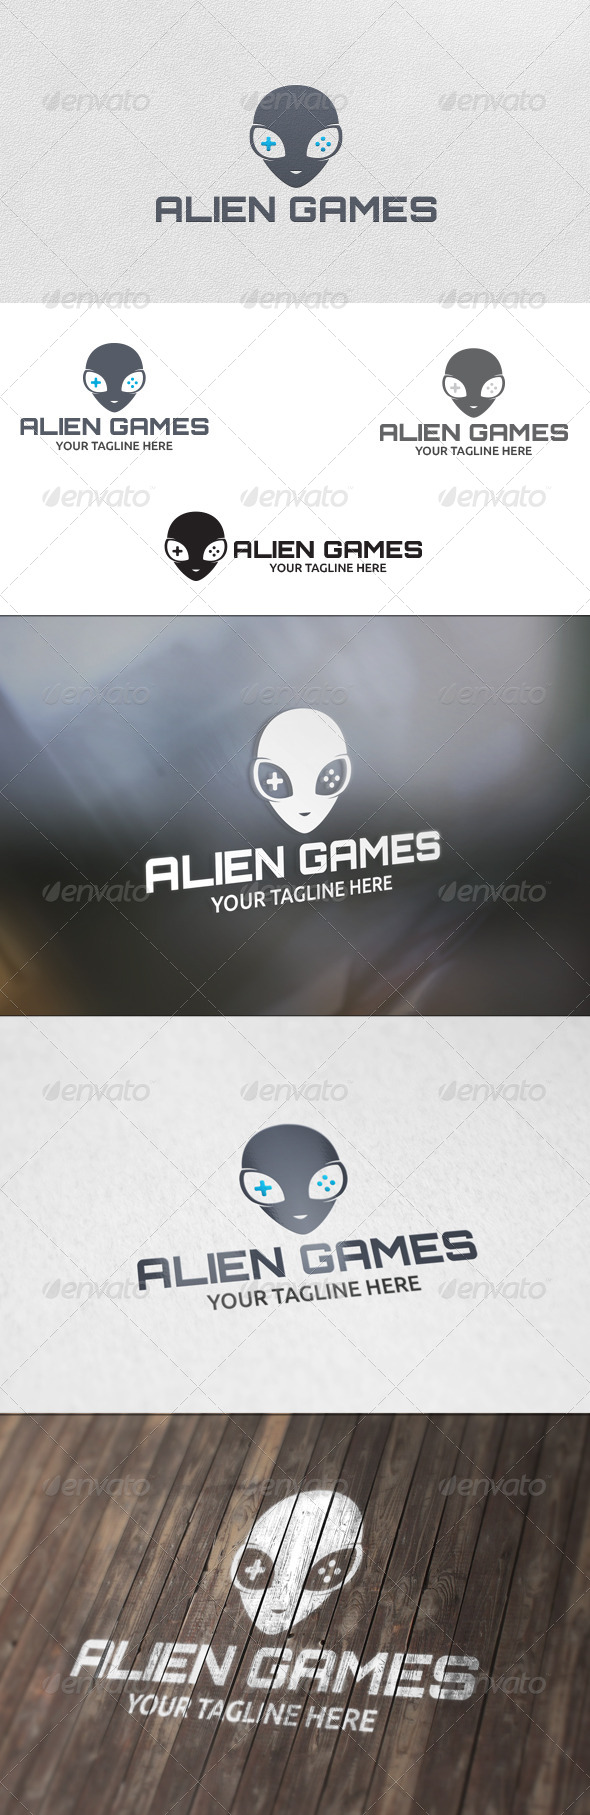 GraphicRiver Alien Games Logo Template 5727219